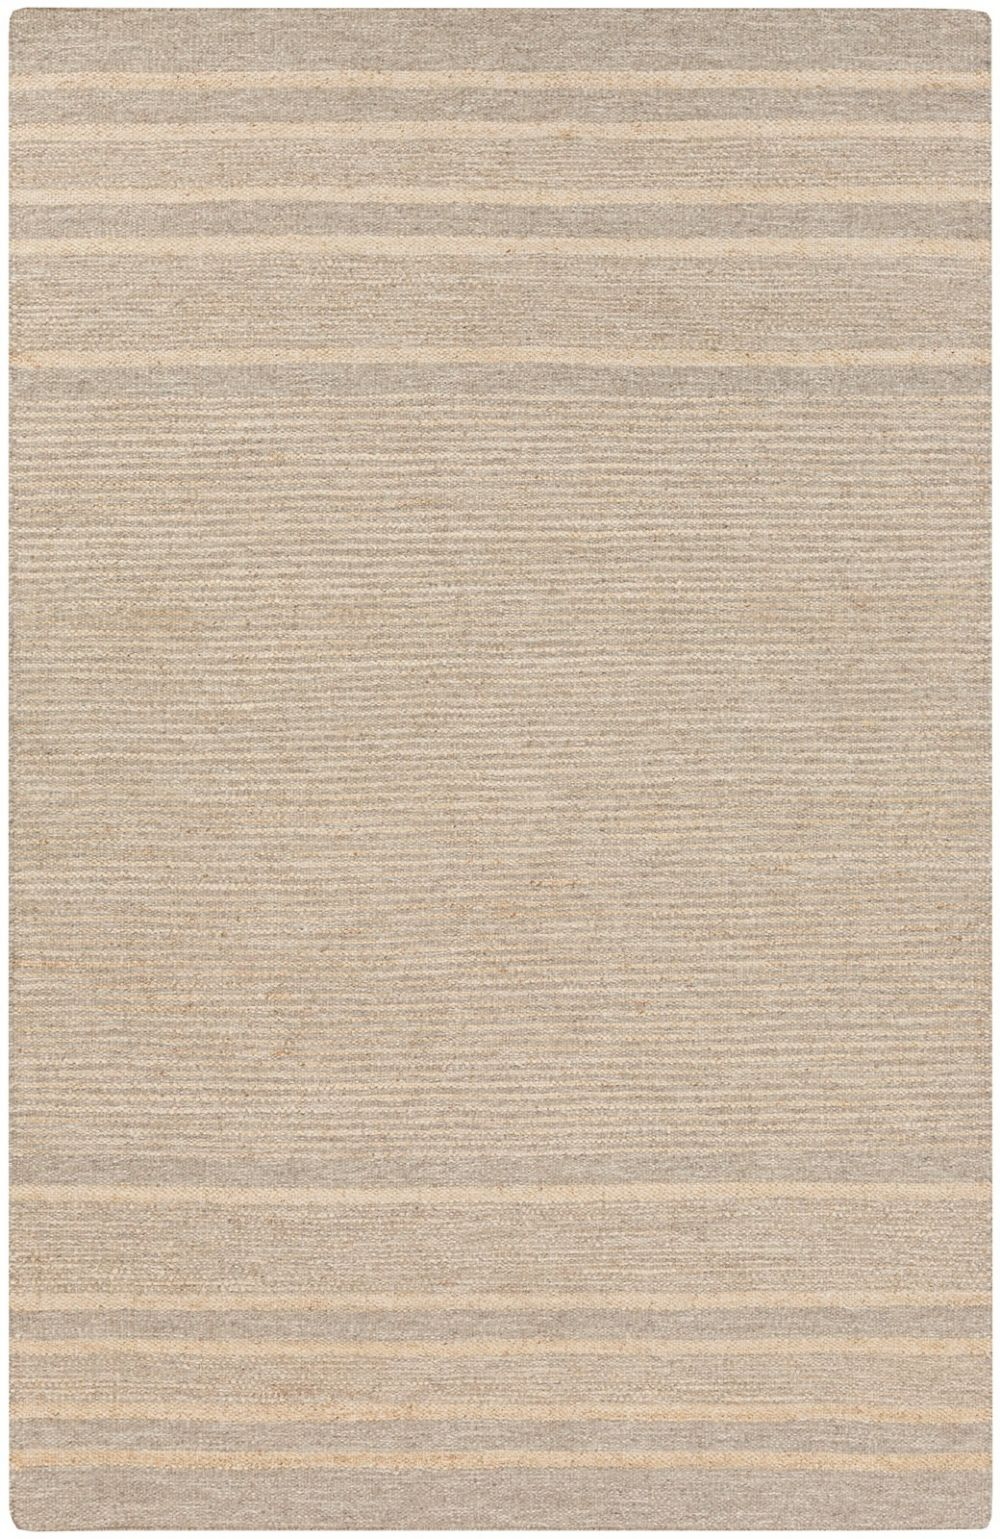 surya fiji natural fiber area rug collection